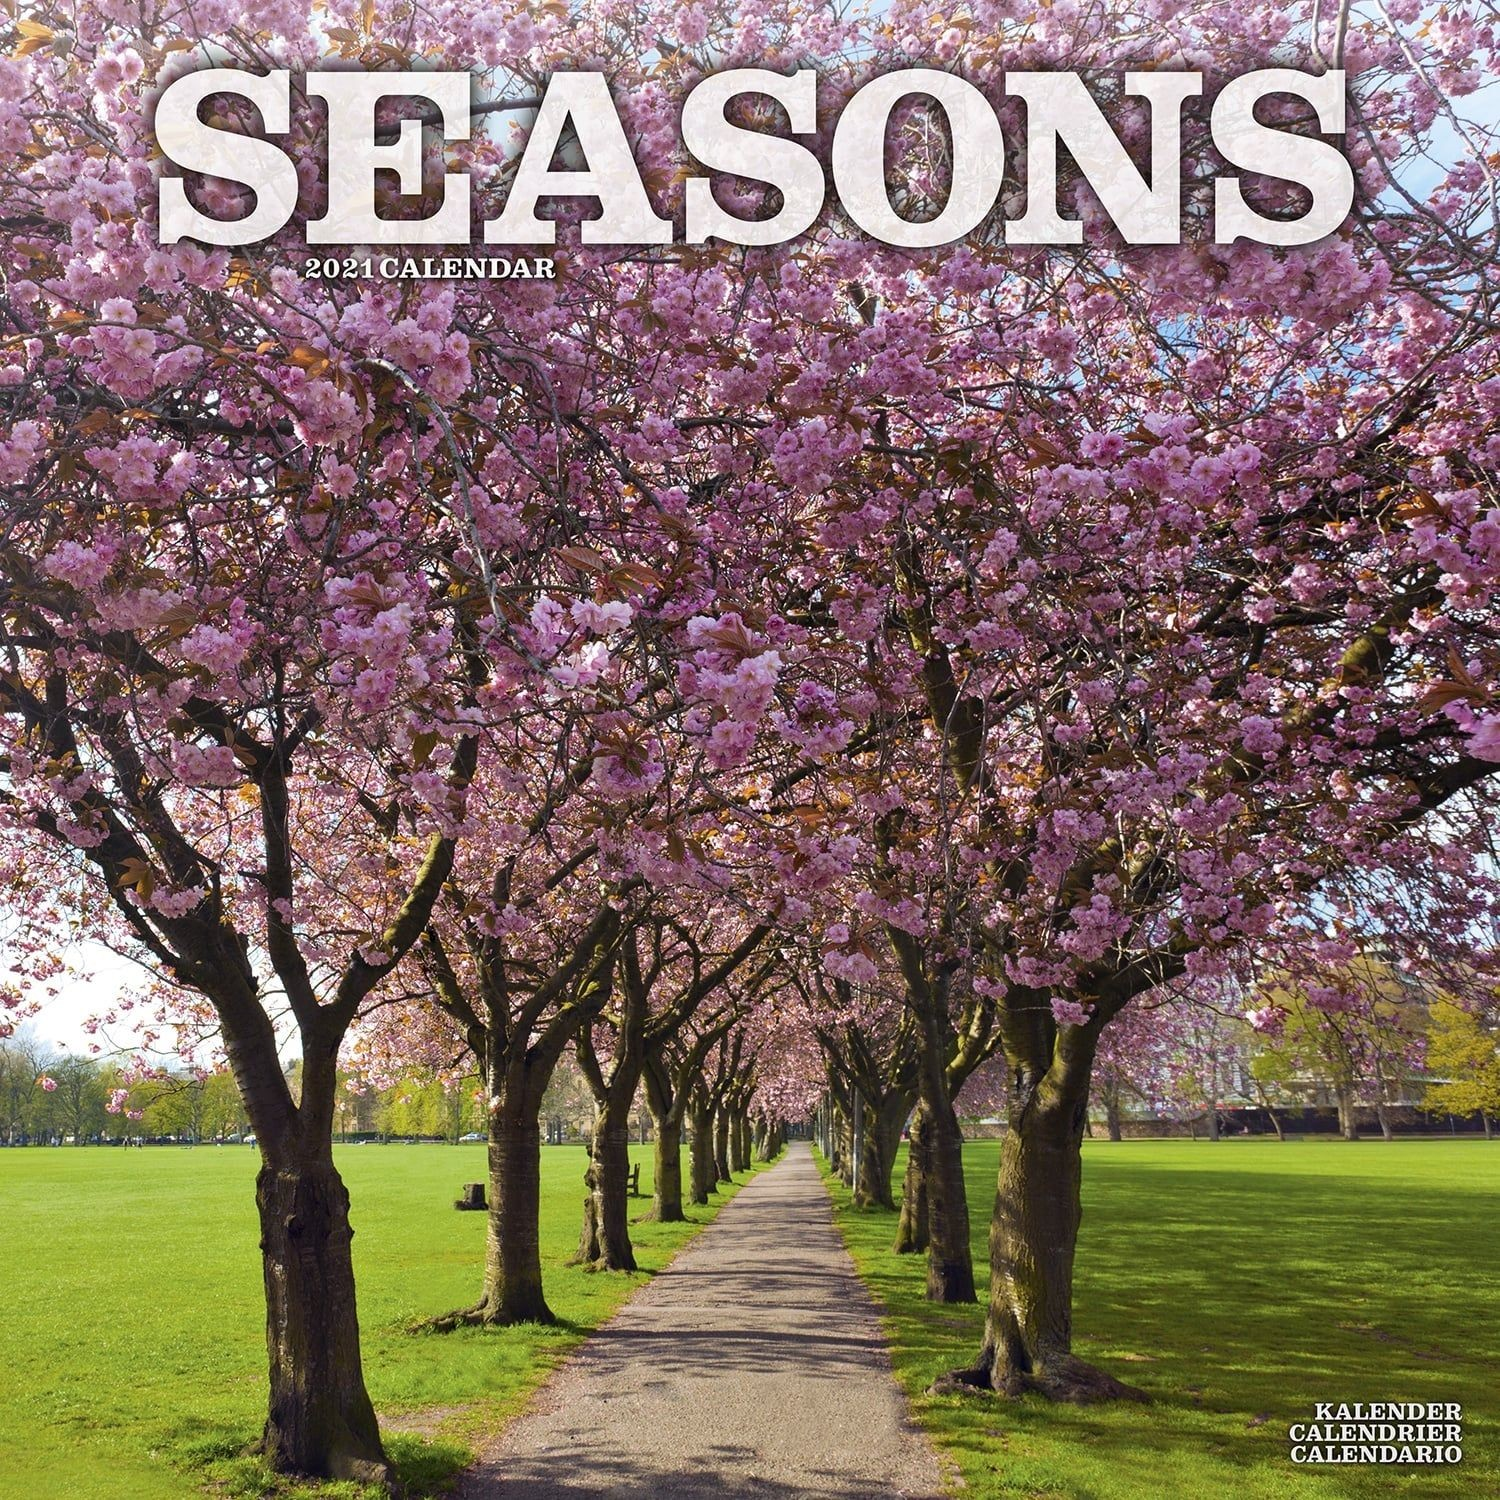 Seasons Wall Calendar 2021 by Avonside